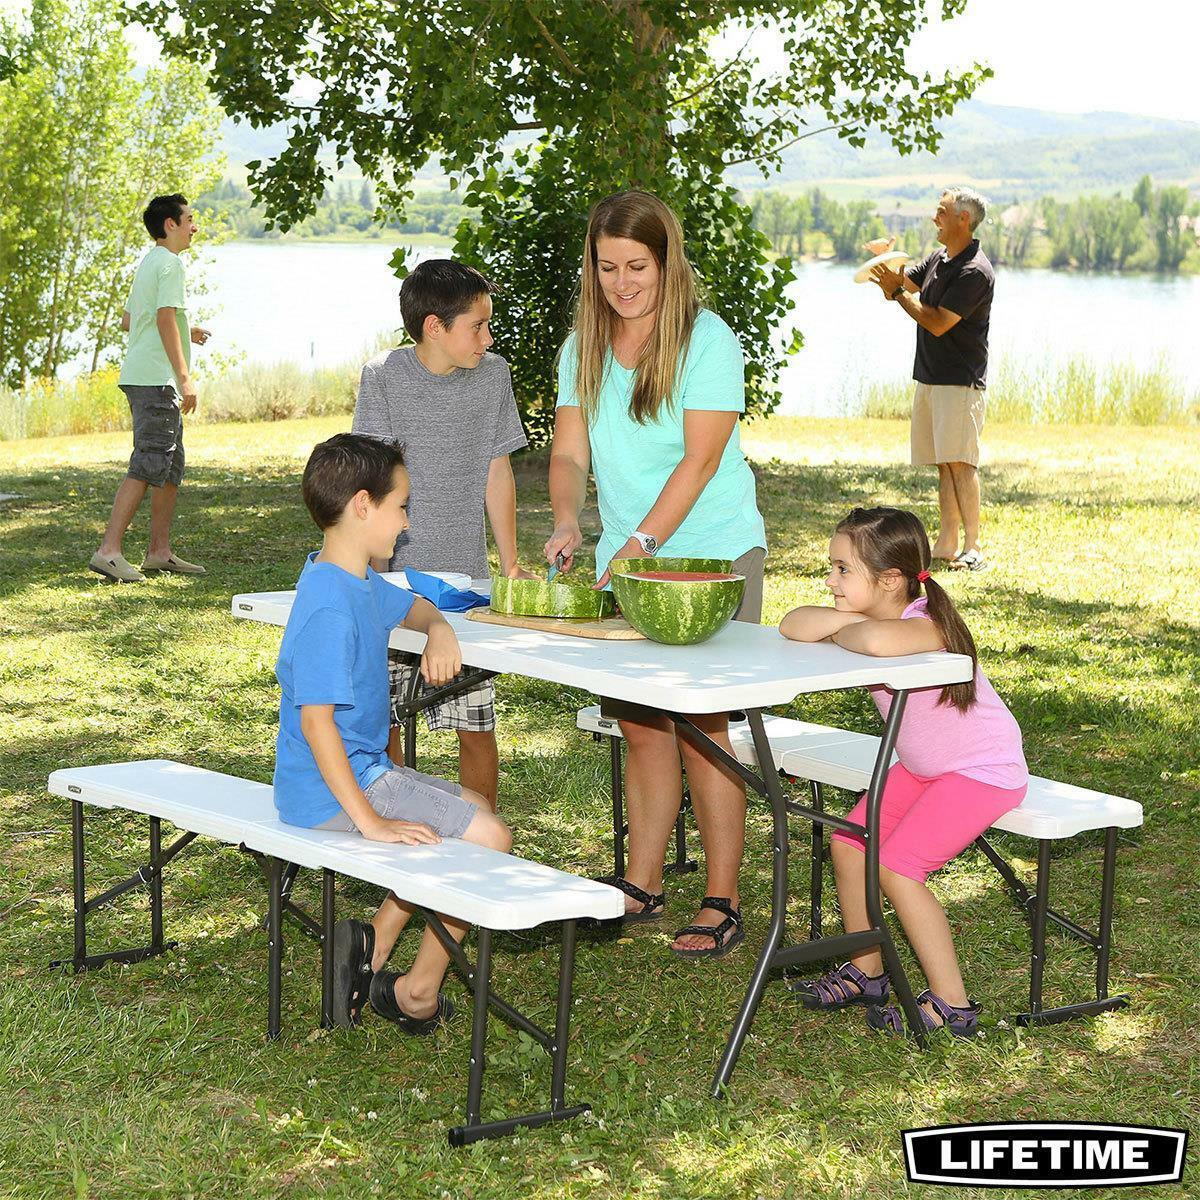 Lifetime 5Ft (152.4 Cm) Fold-In-Half Table + 2 Benches Combo Set